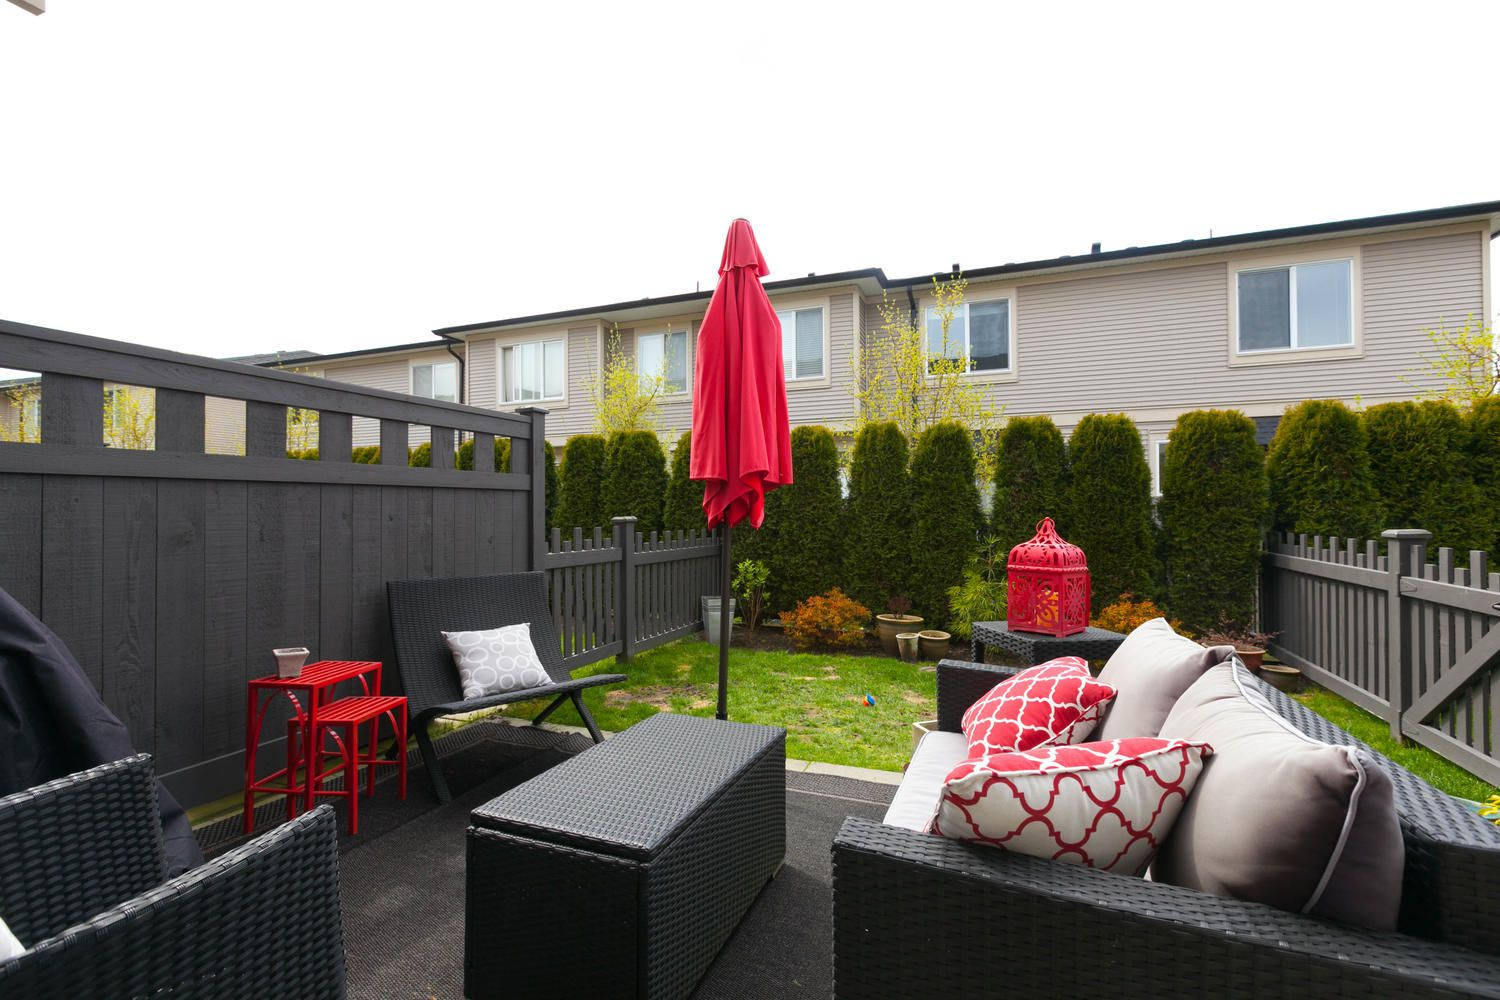 """Photo 38: Photos: 97 7938 209 Street in Langley: Willoughby Heights Townhouse for sale in """"Red Maple Park"""" : MLS®# R2260950"""